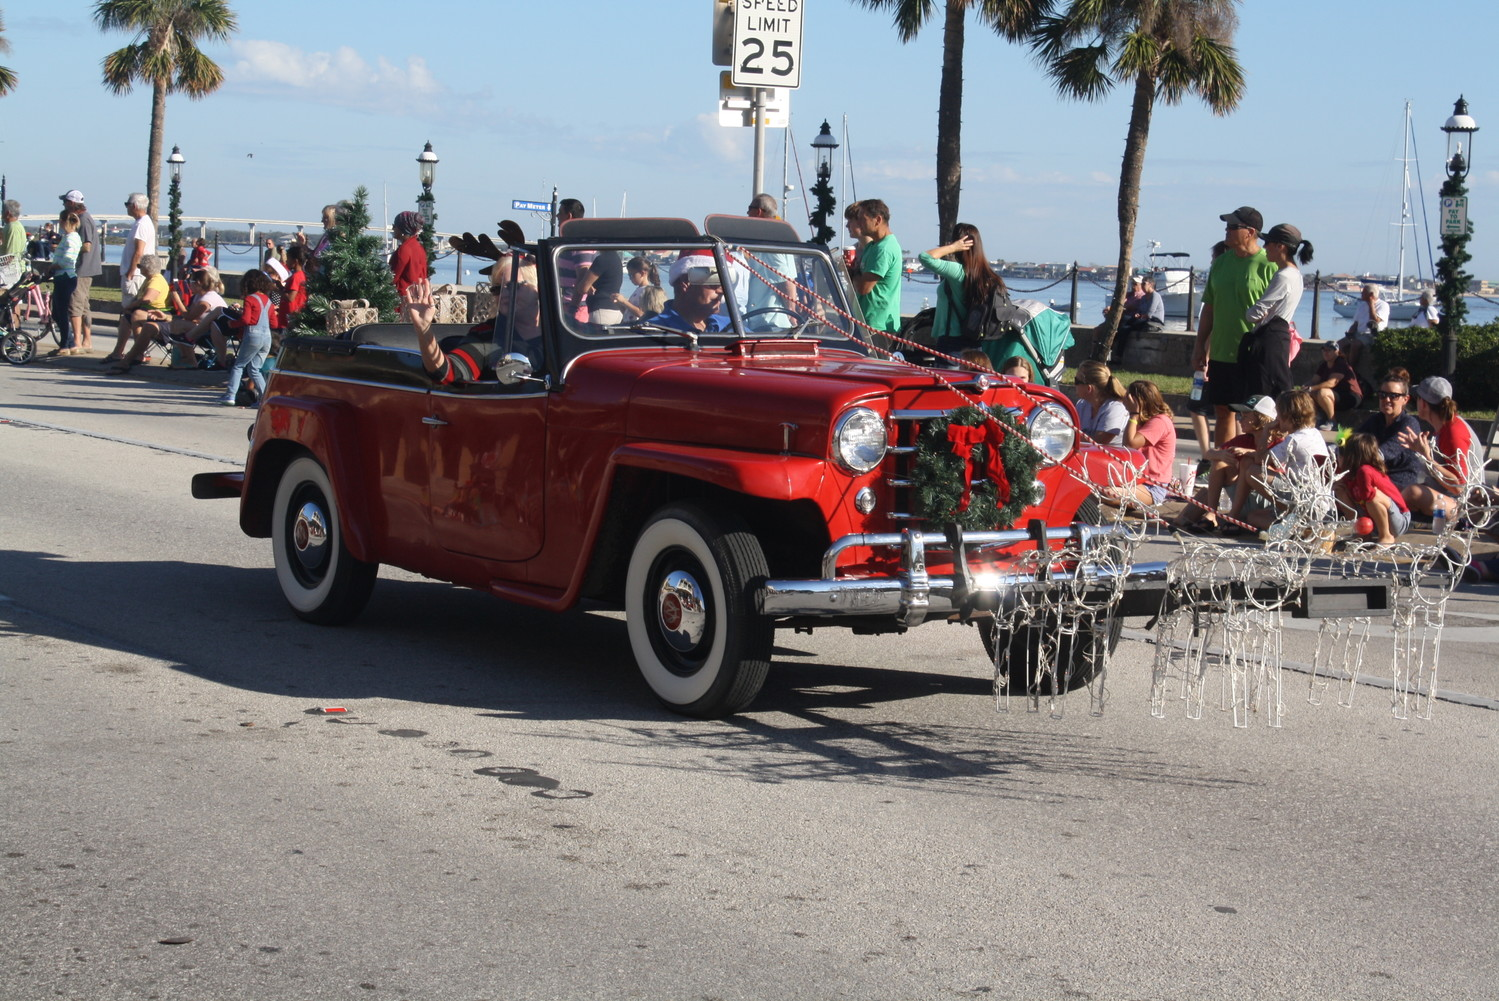 Classic cars adorned in holiday decorations stroll down the streets of the Ancient City.